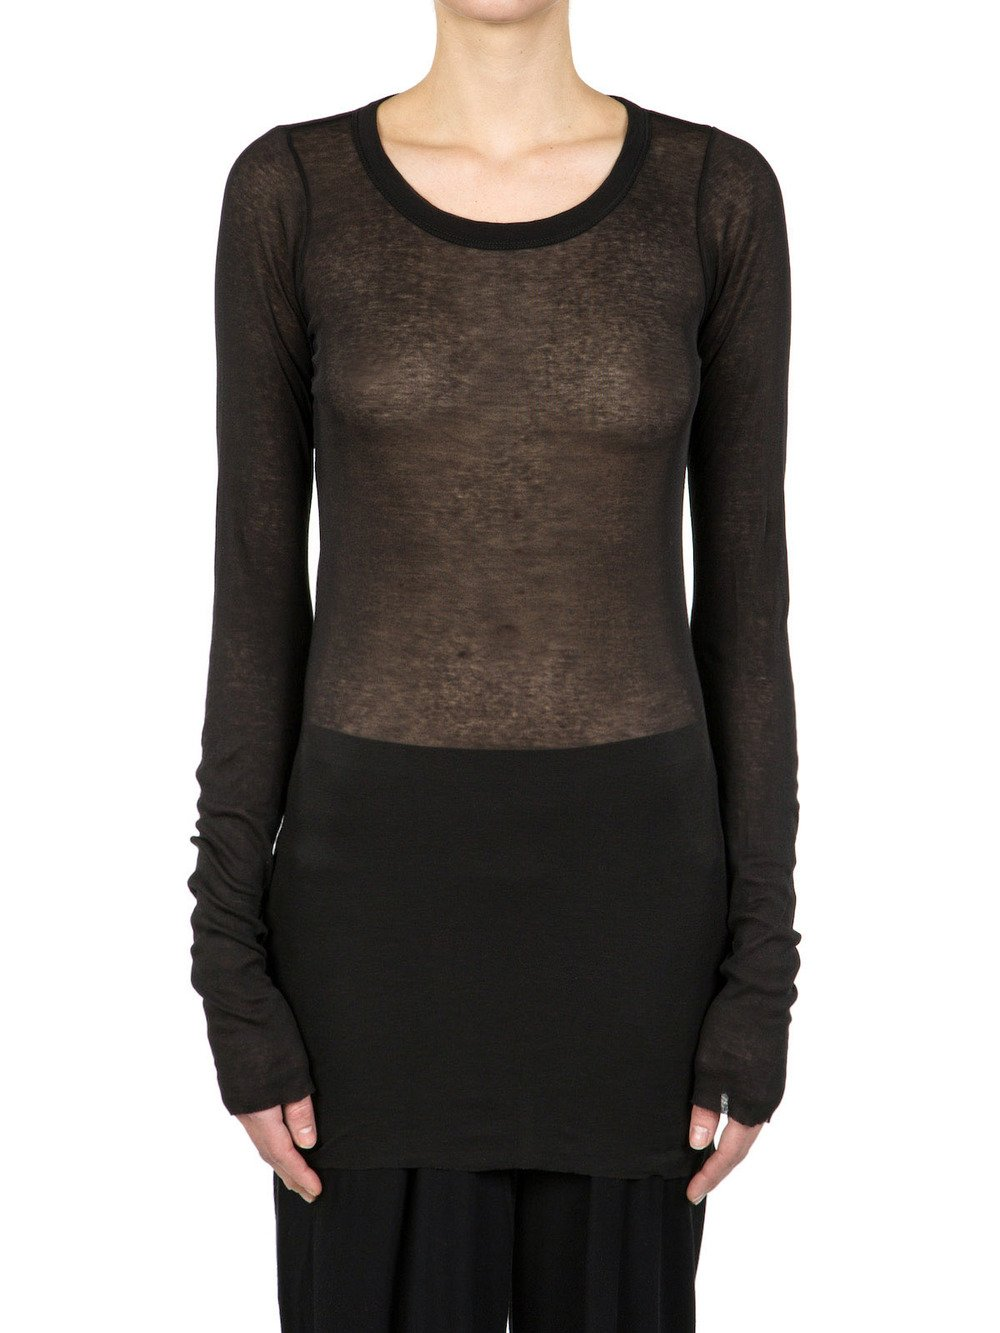 Rick Owens long sleeve top Low Shipping Cheap Sale Cheap 2018 New Online Buy Cheap Price ayW3pz1Zu